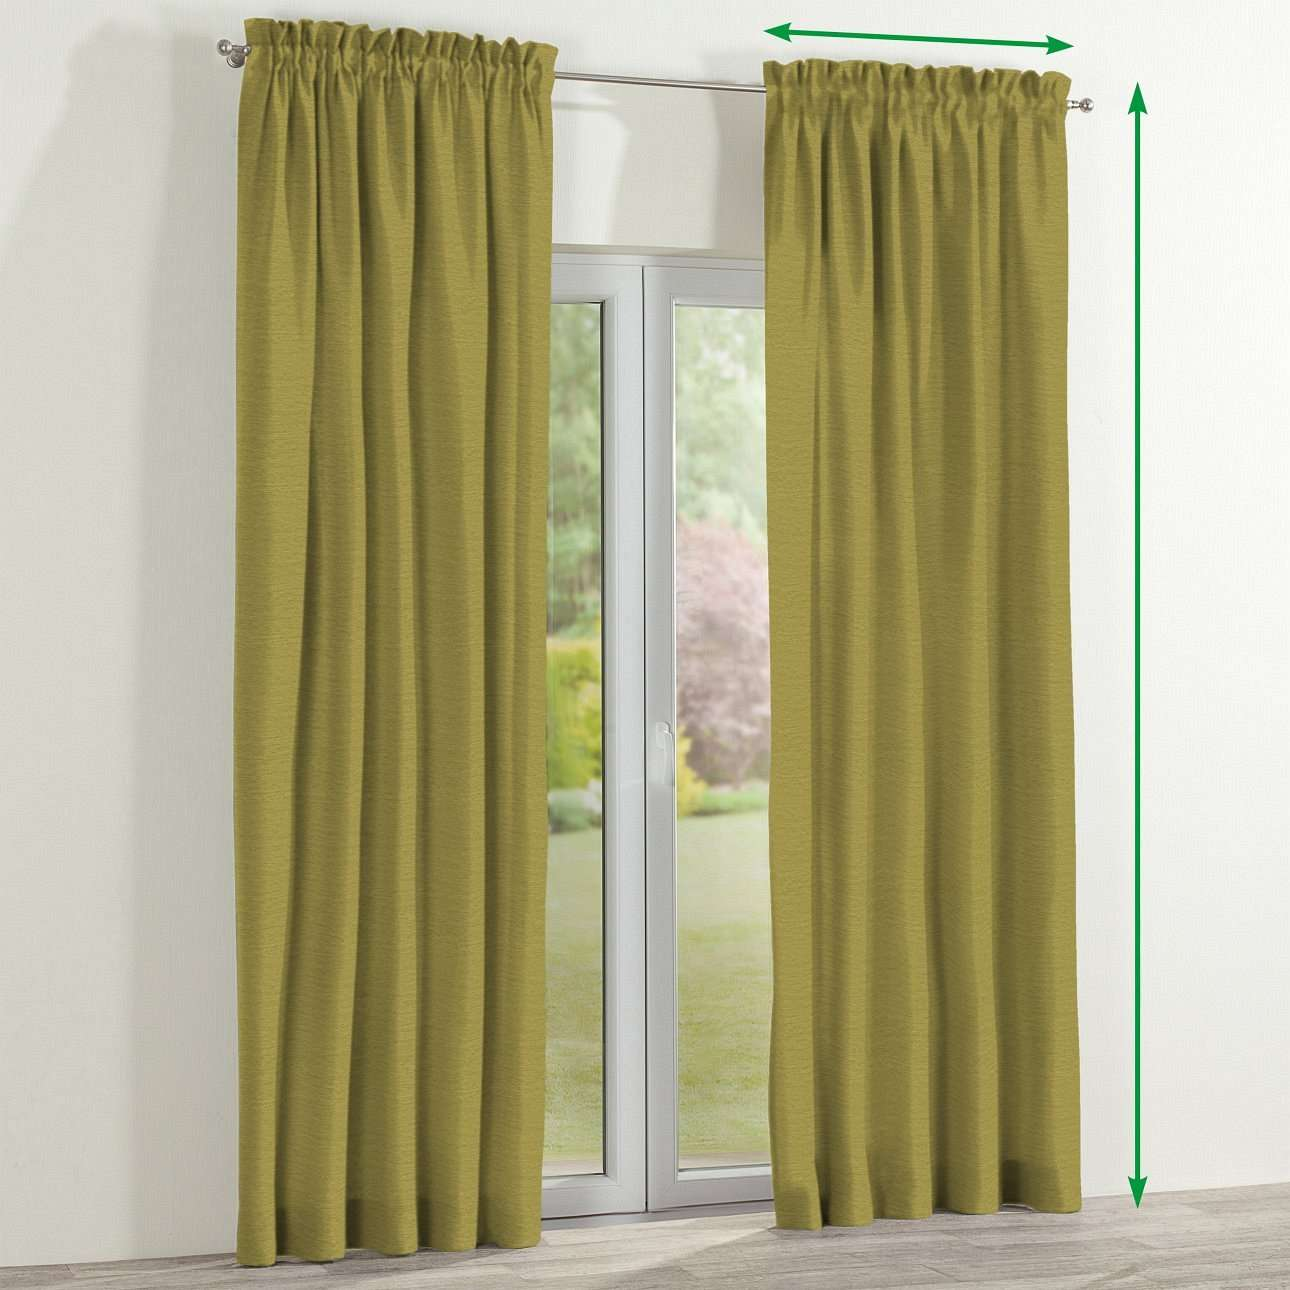 Slot and frill lined curtains in collection Chenille, fabric: 160-47